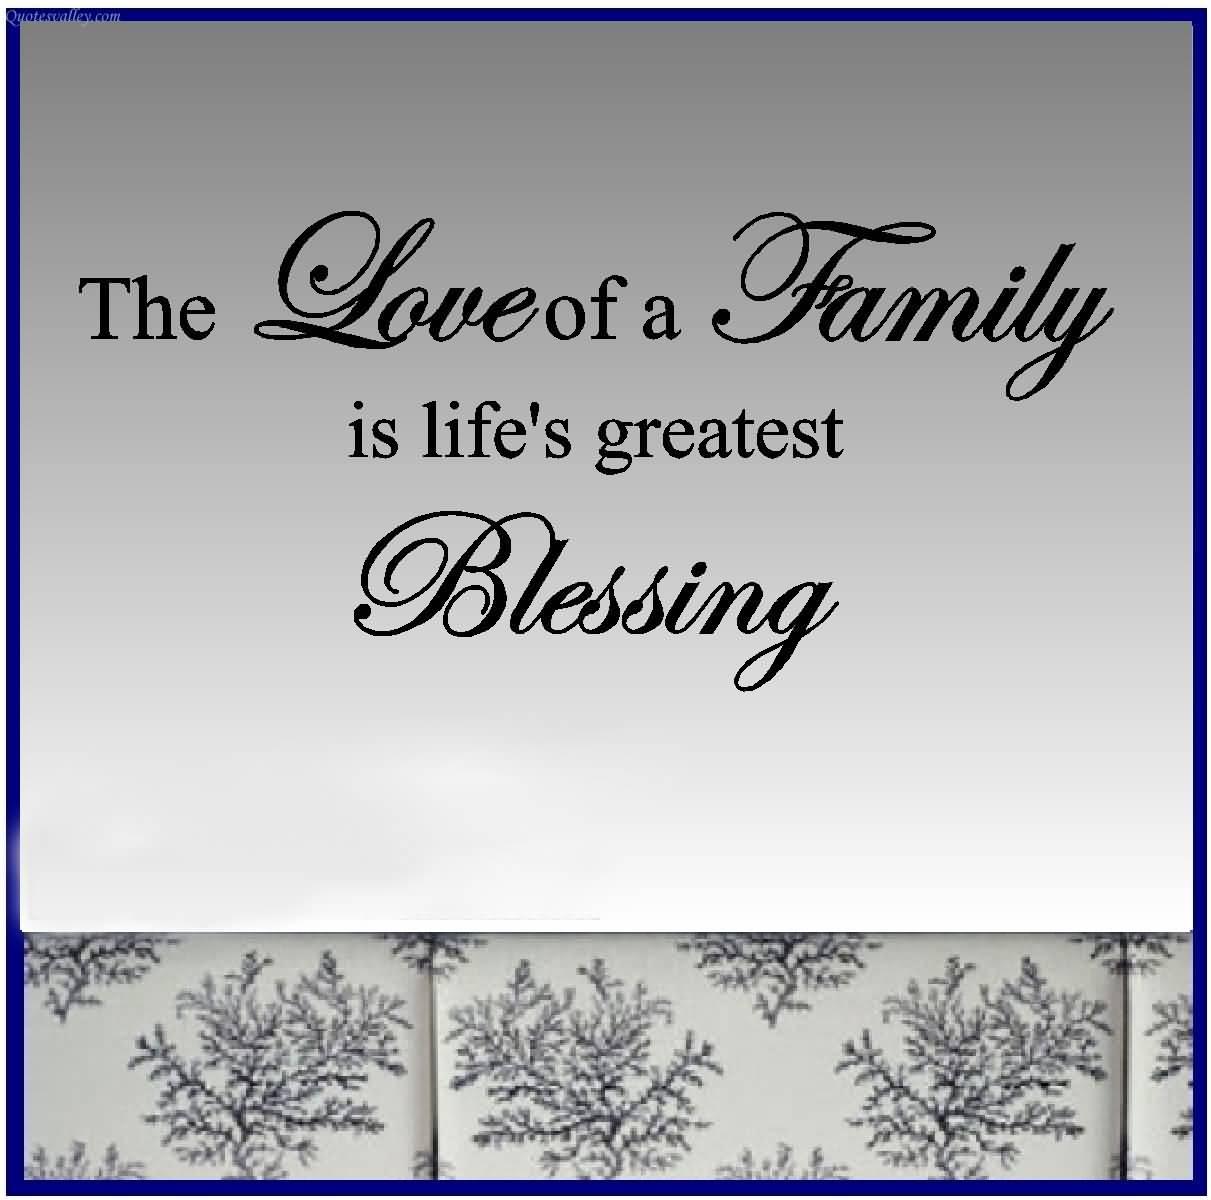 Short Religious Quotes About Family: Family Blessings Quotes. QuotesGram